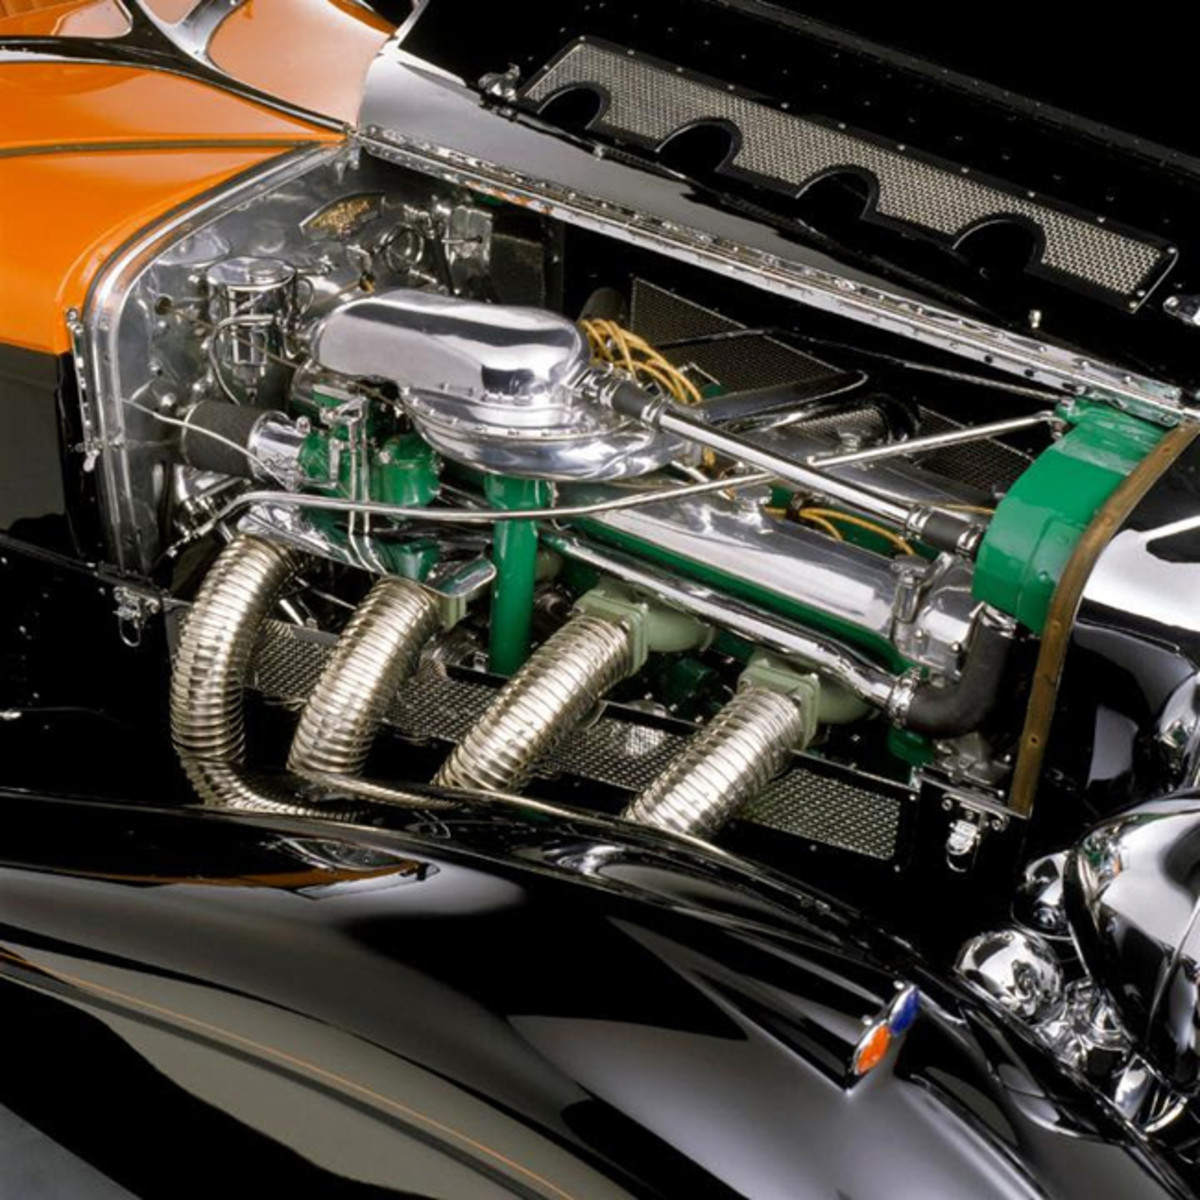 The 1935 Gurney-Nutting Speedster is Equipped with an SJ Factory Supercharged Engine. Image - La Jolla Concours d'Elegance